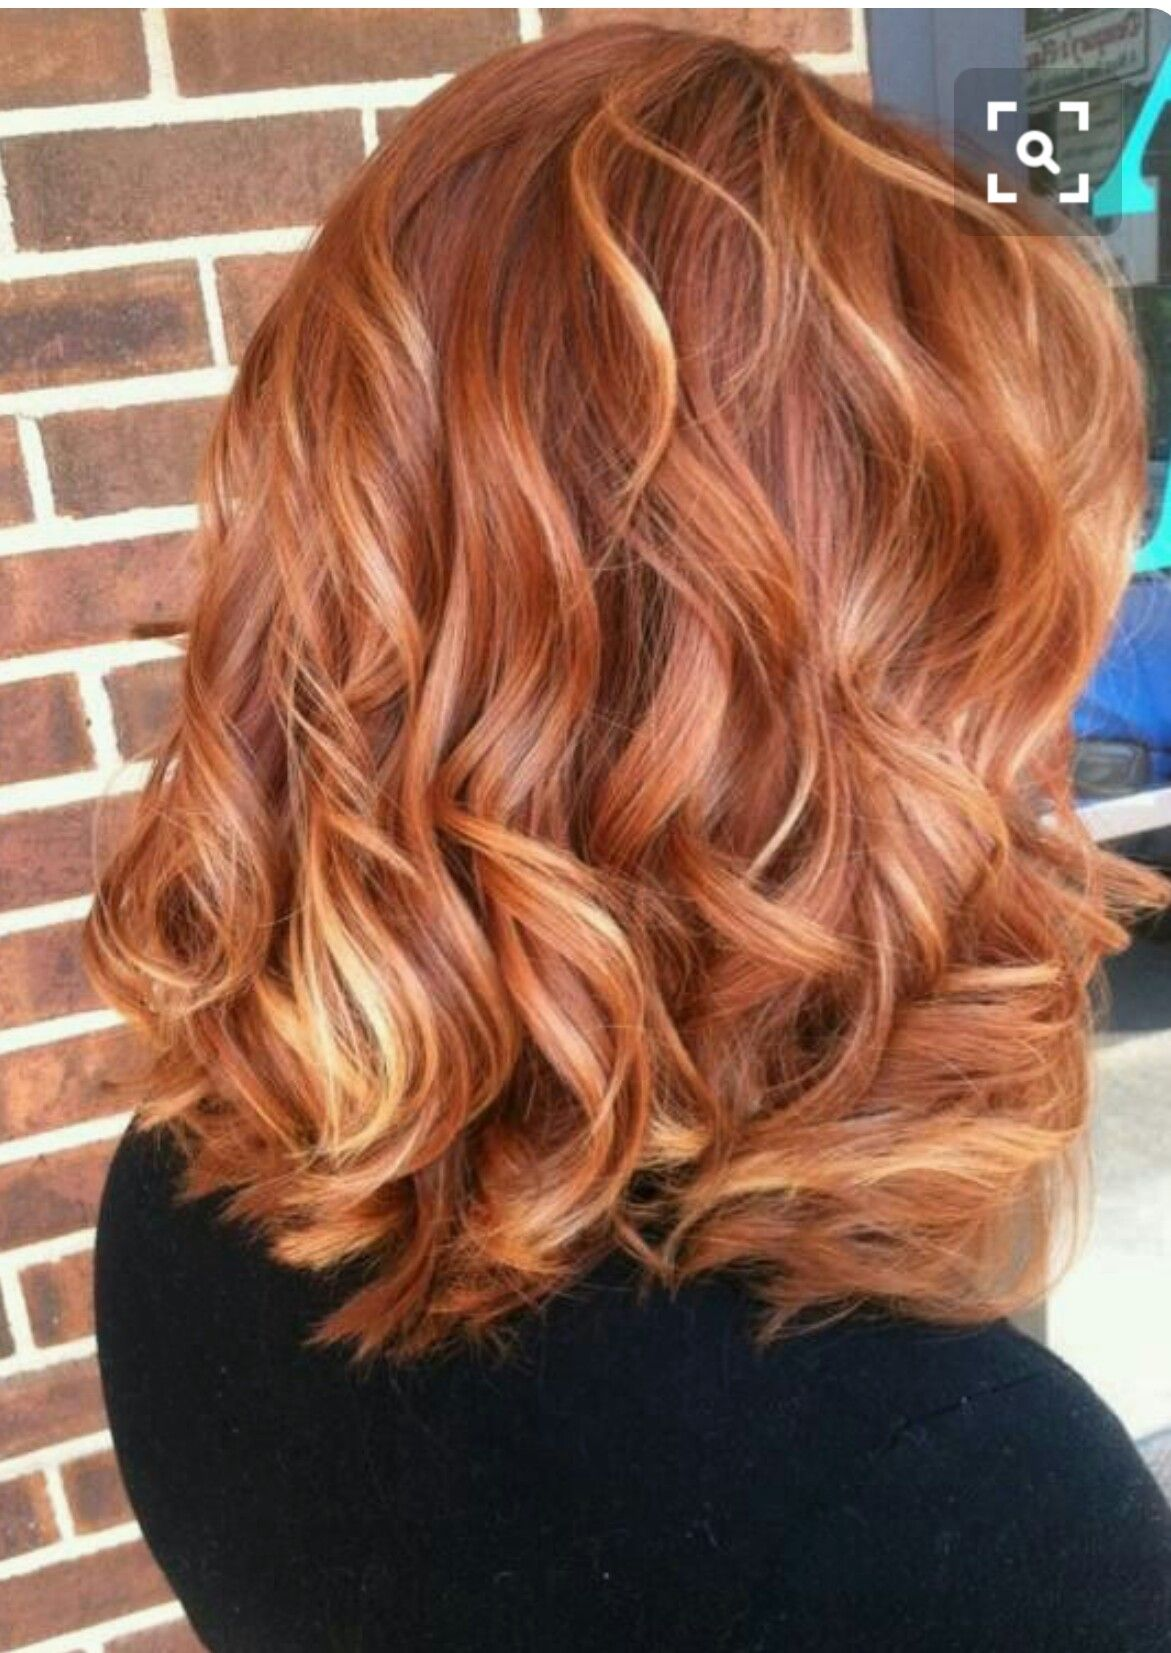 I love that hair color my style Pinterest